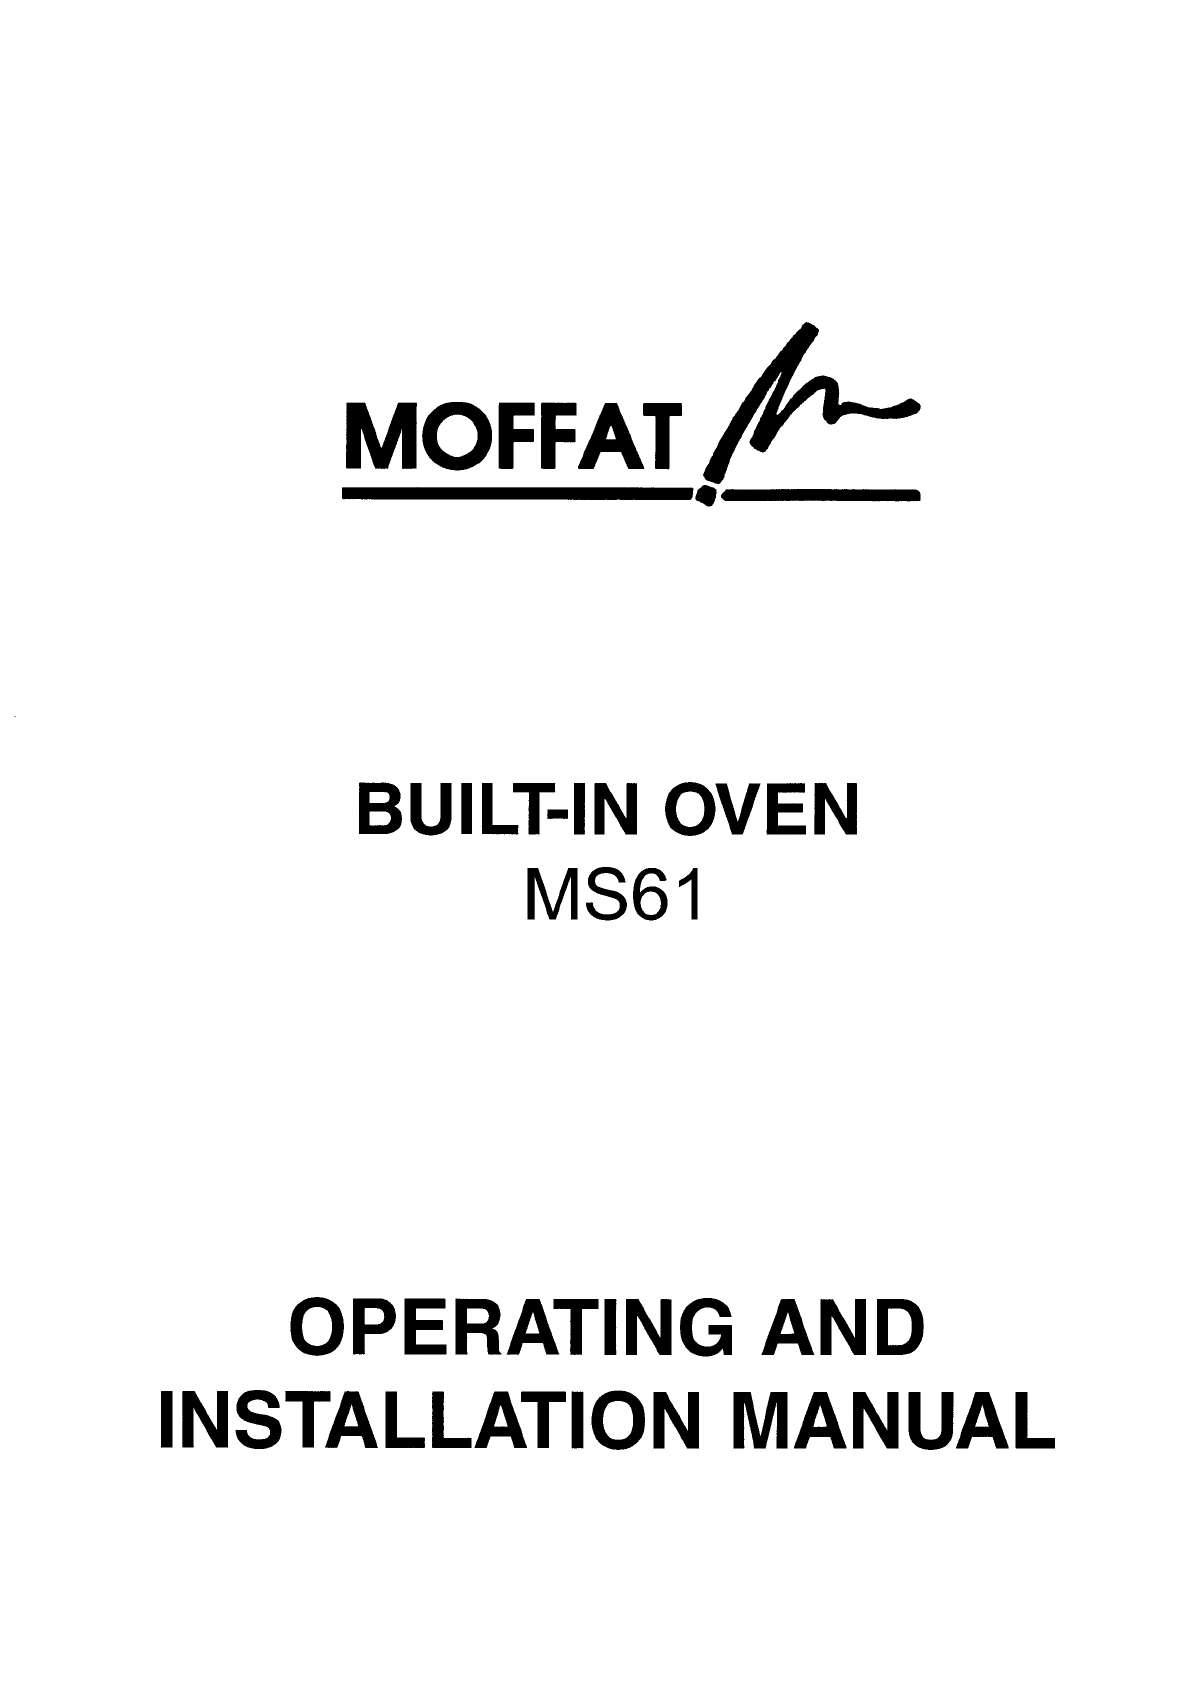 moffat oven ms61 user guide manualsonline com rh kitchen manualsonline com Simple Wiring Diagrams Simple Wiring Diagrams